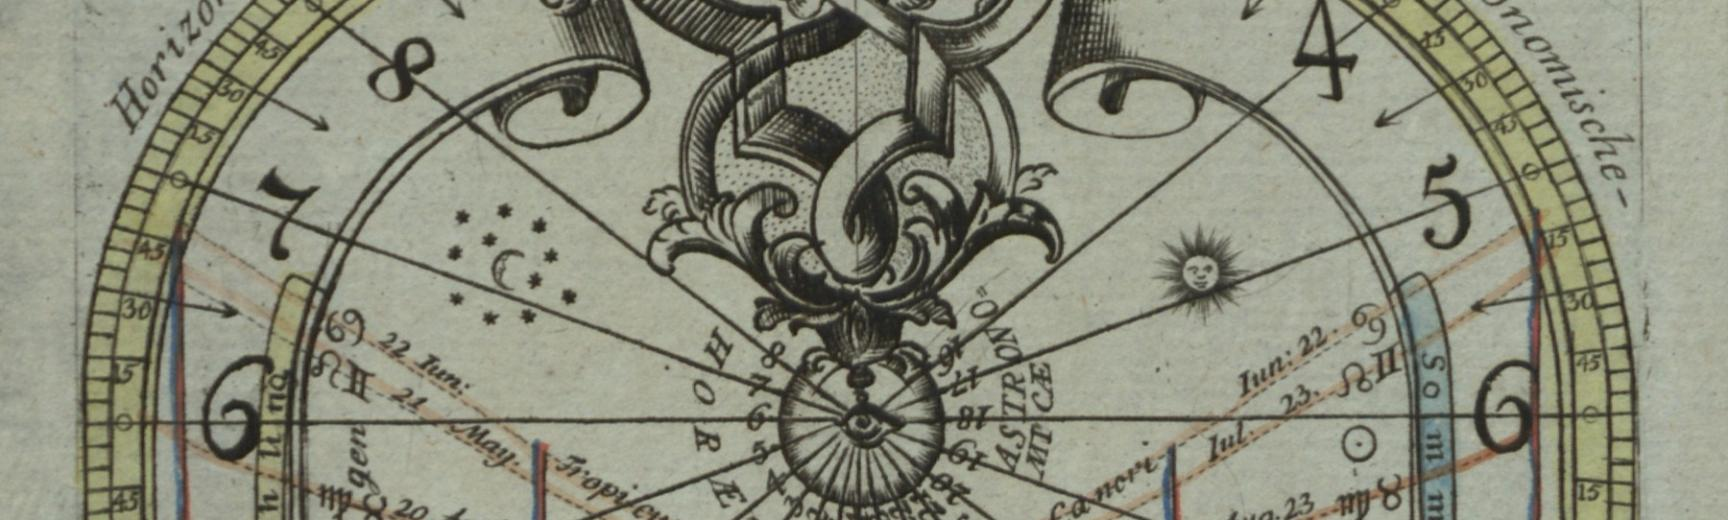 Print (Engraving) Paper sundial with gnomon by Johan Conrad Gütle, Nuremberg, 17th Century (banner image showing top half)